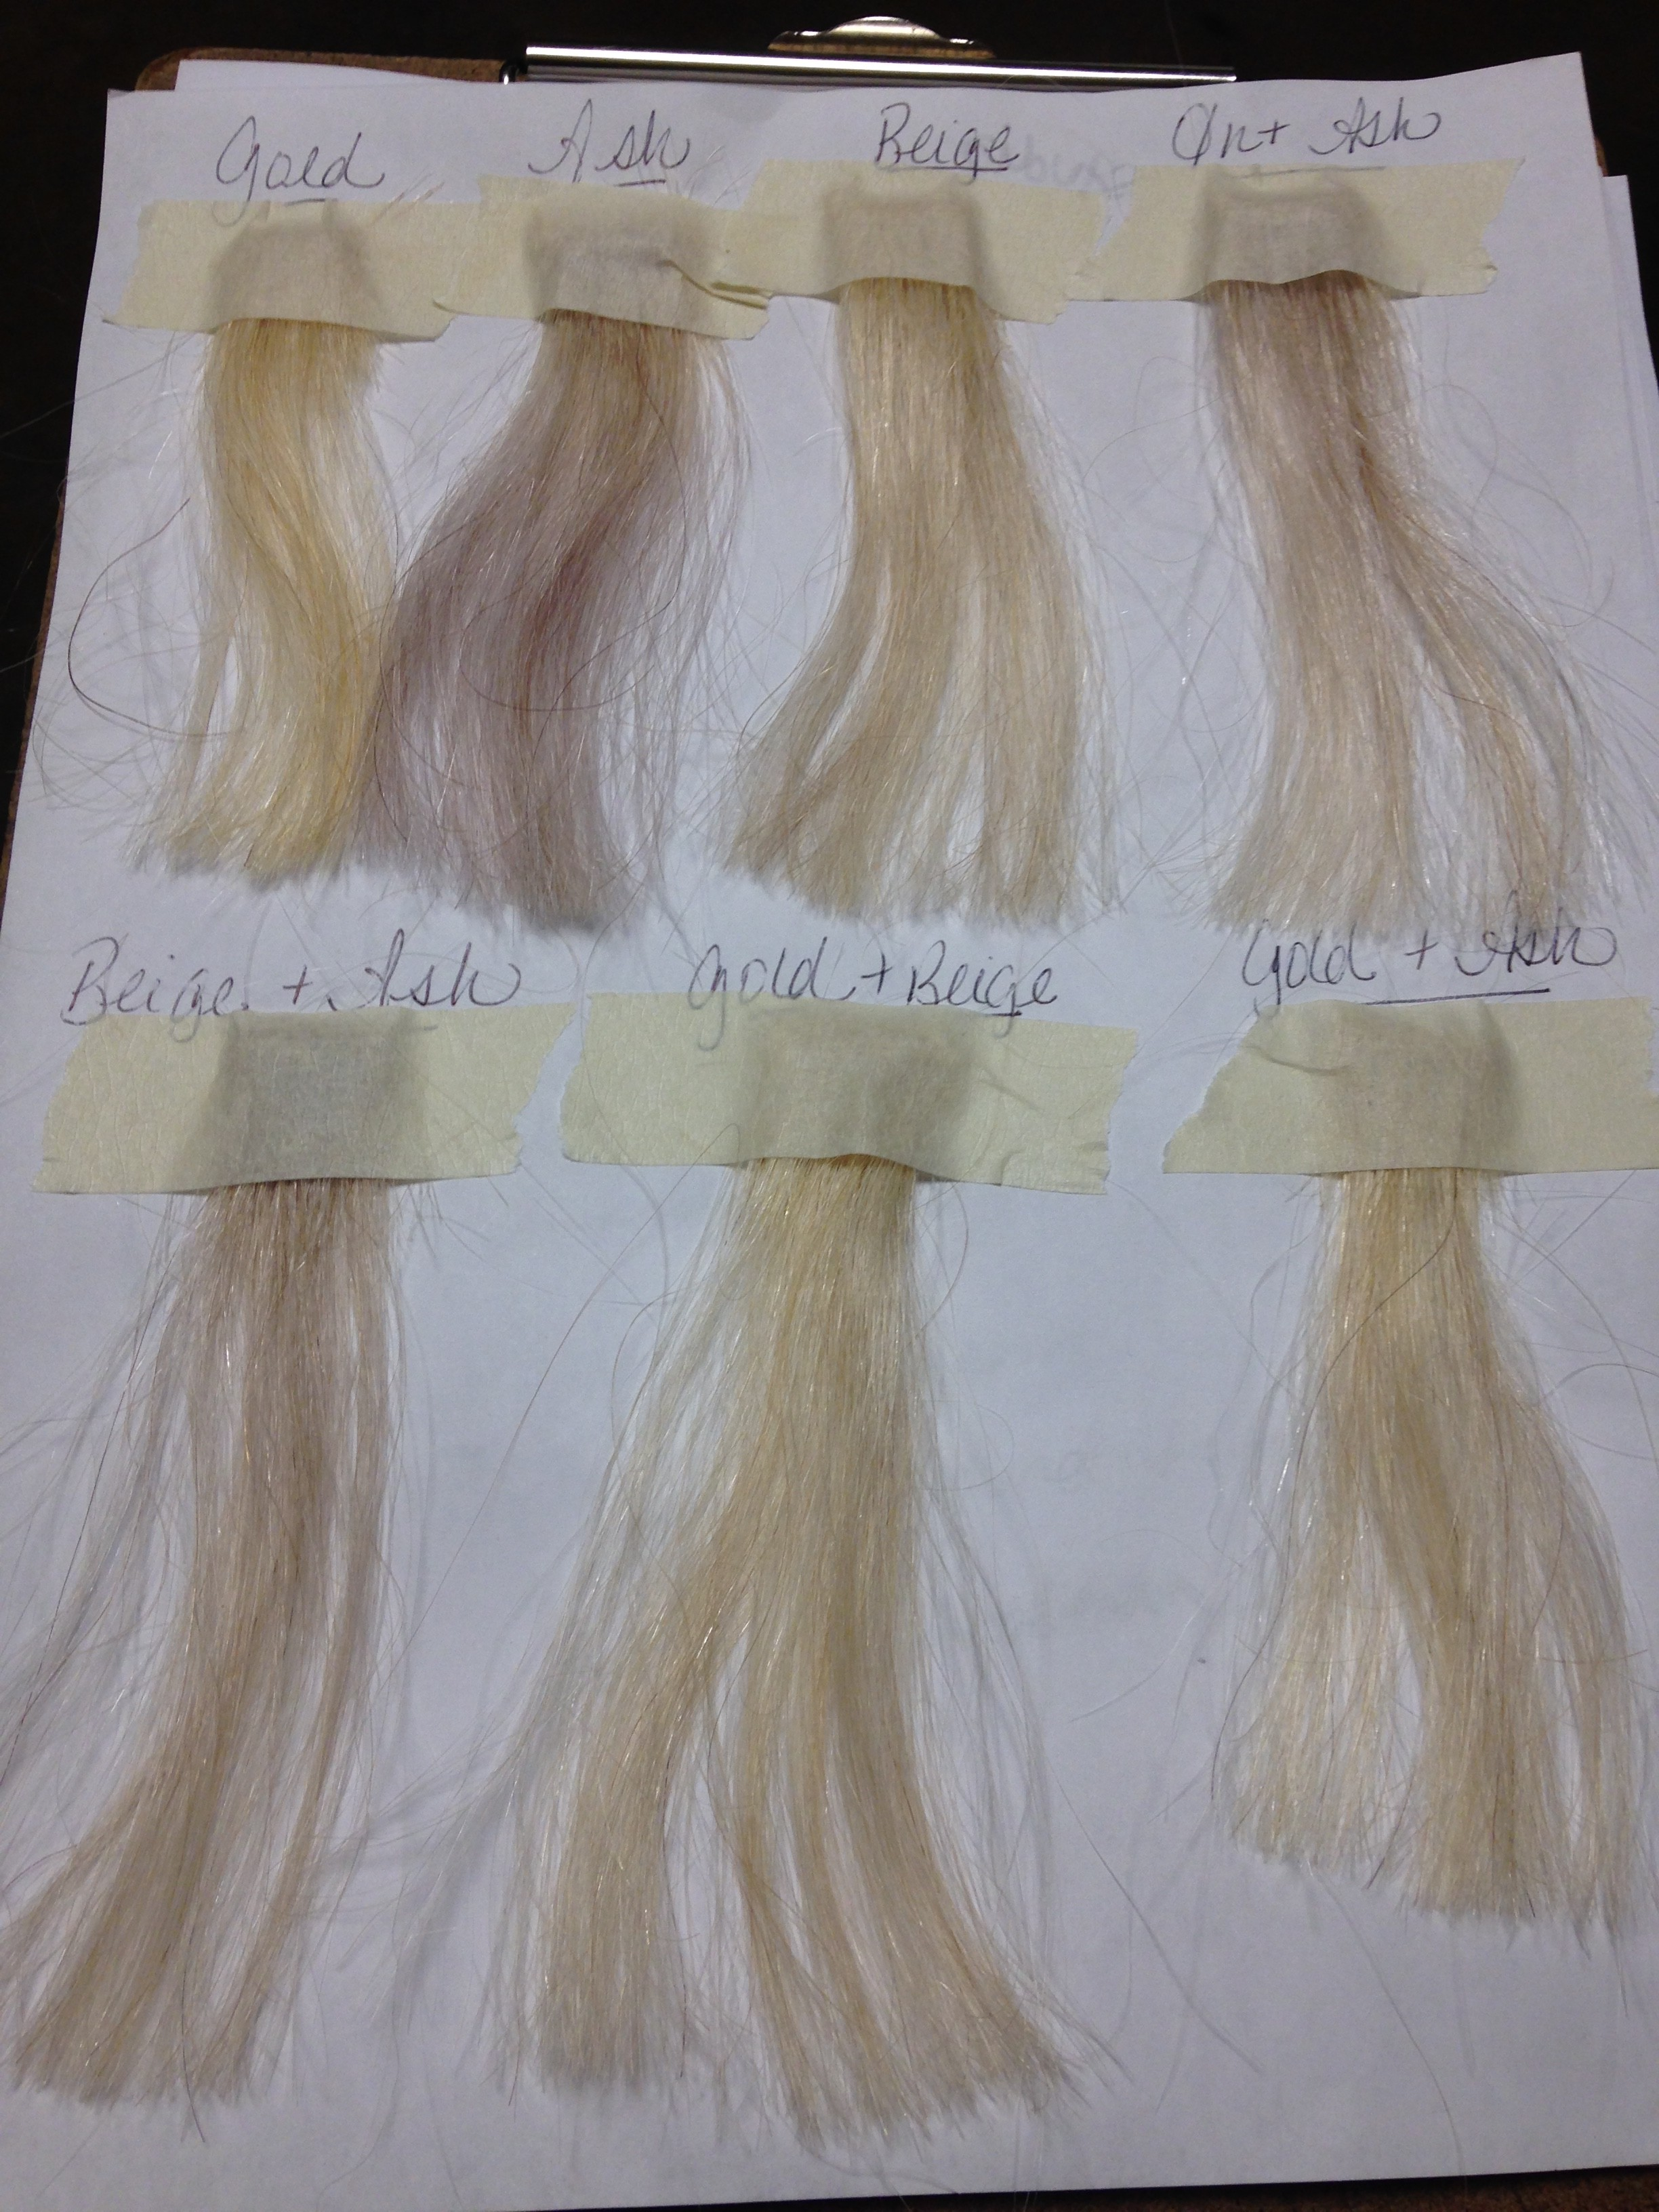 New Aveda Specialty Glosses For Luxury Blondes Hair